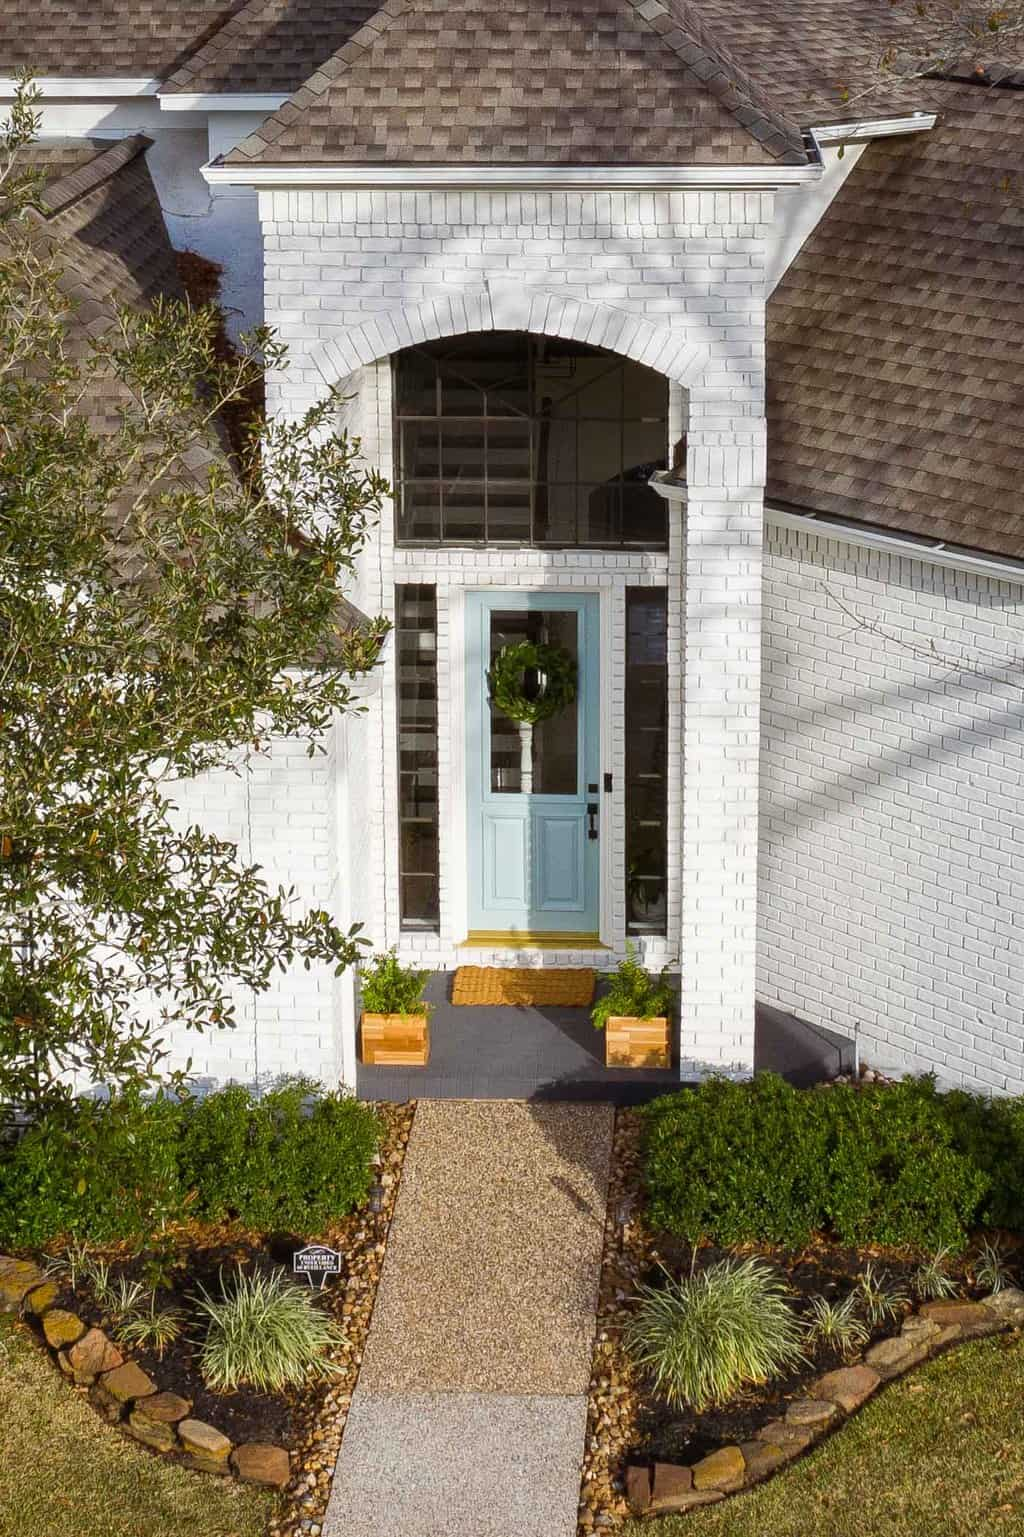 drone photo of an updated exterior brick house entrance